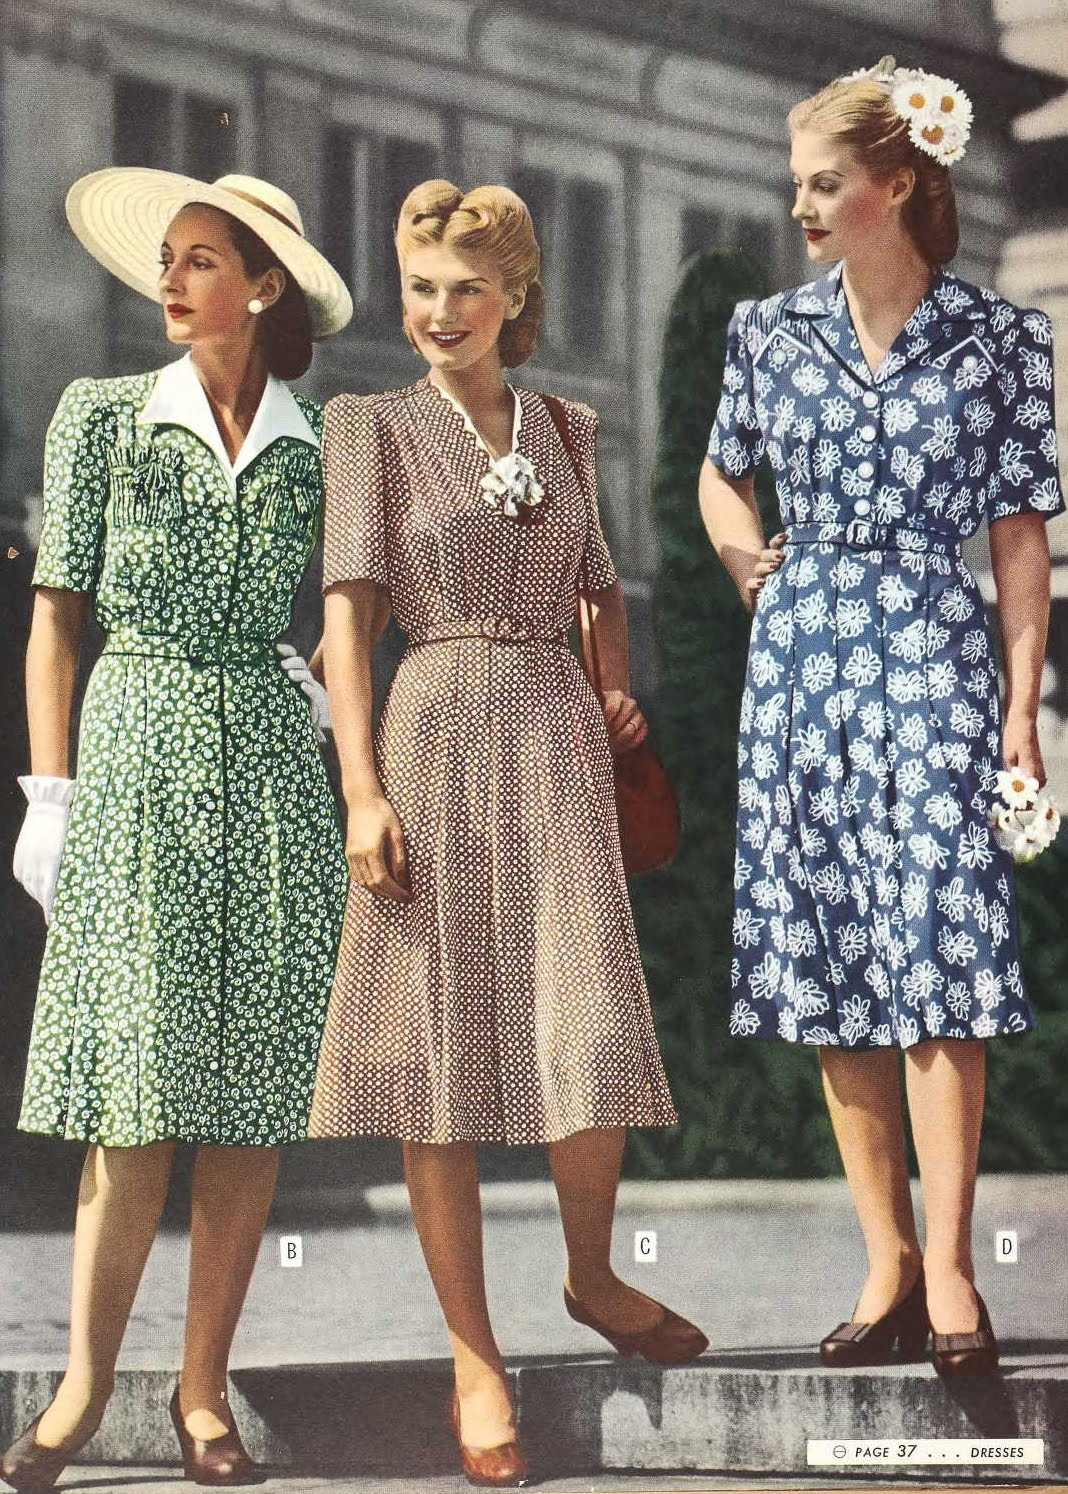 1940s Style Dresses Fashion Clothing: Snapped Garters: 40 Years Of Fashion Evolution Before Your